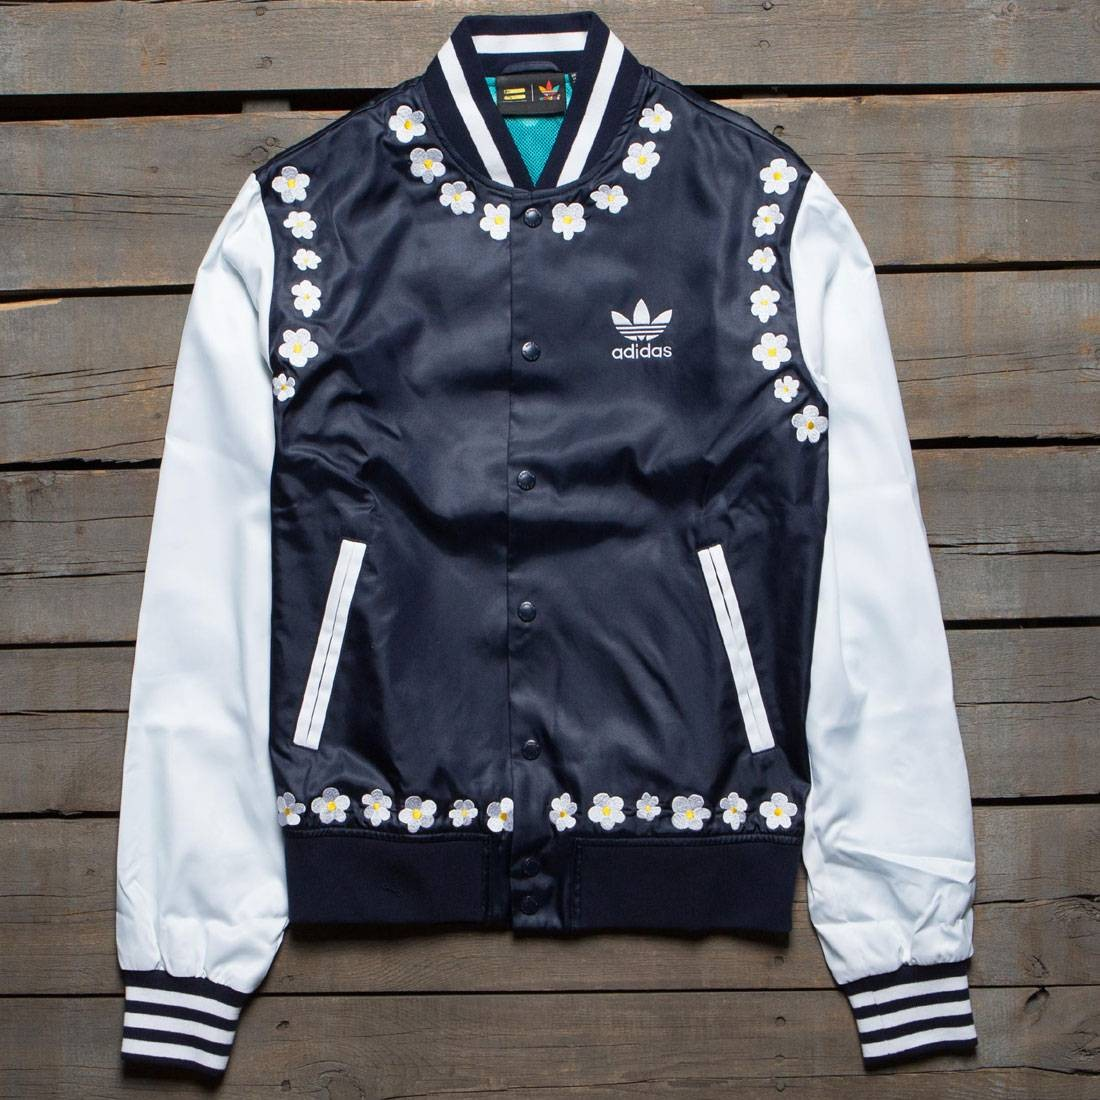 Adidas x Pharrell Williams Men Daisy Varsity Jacket (navy / legend ink / white)